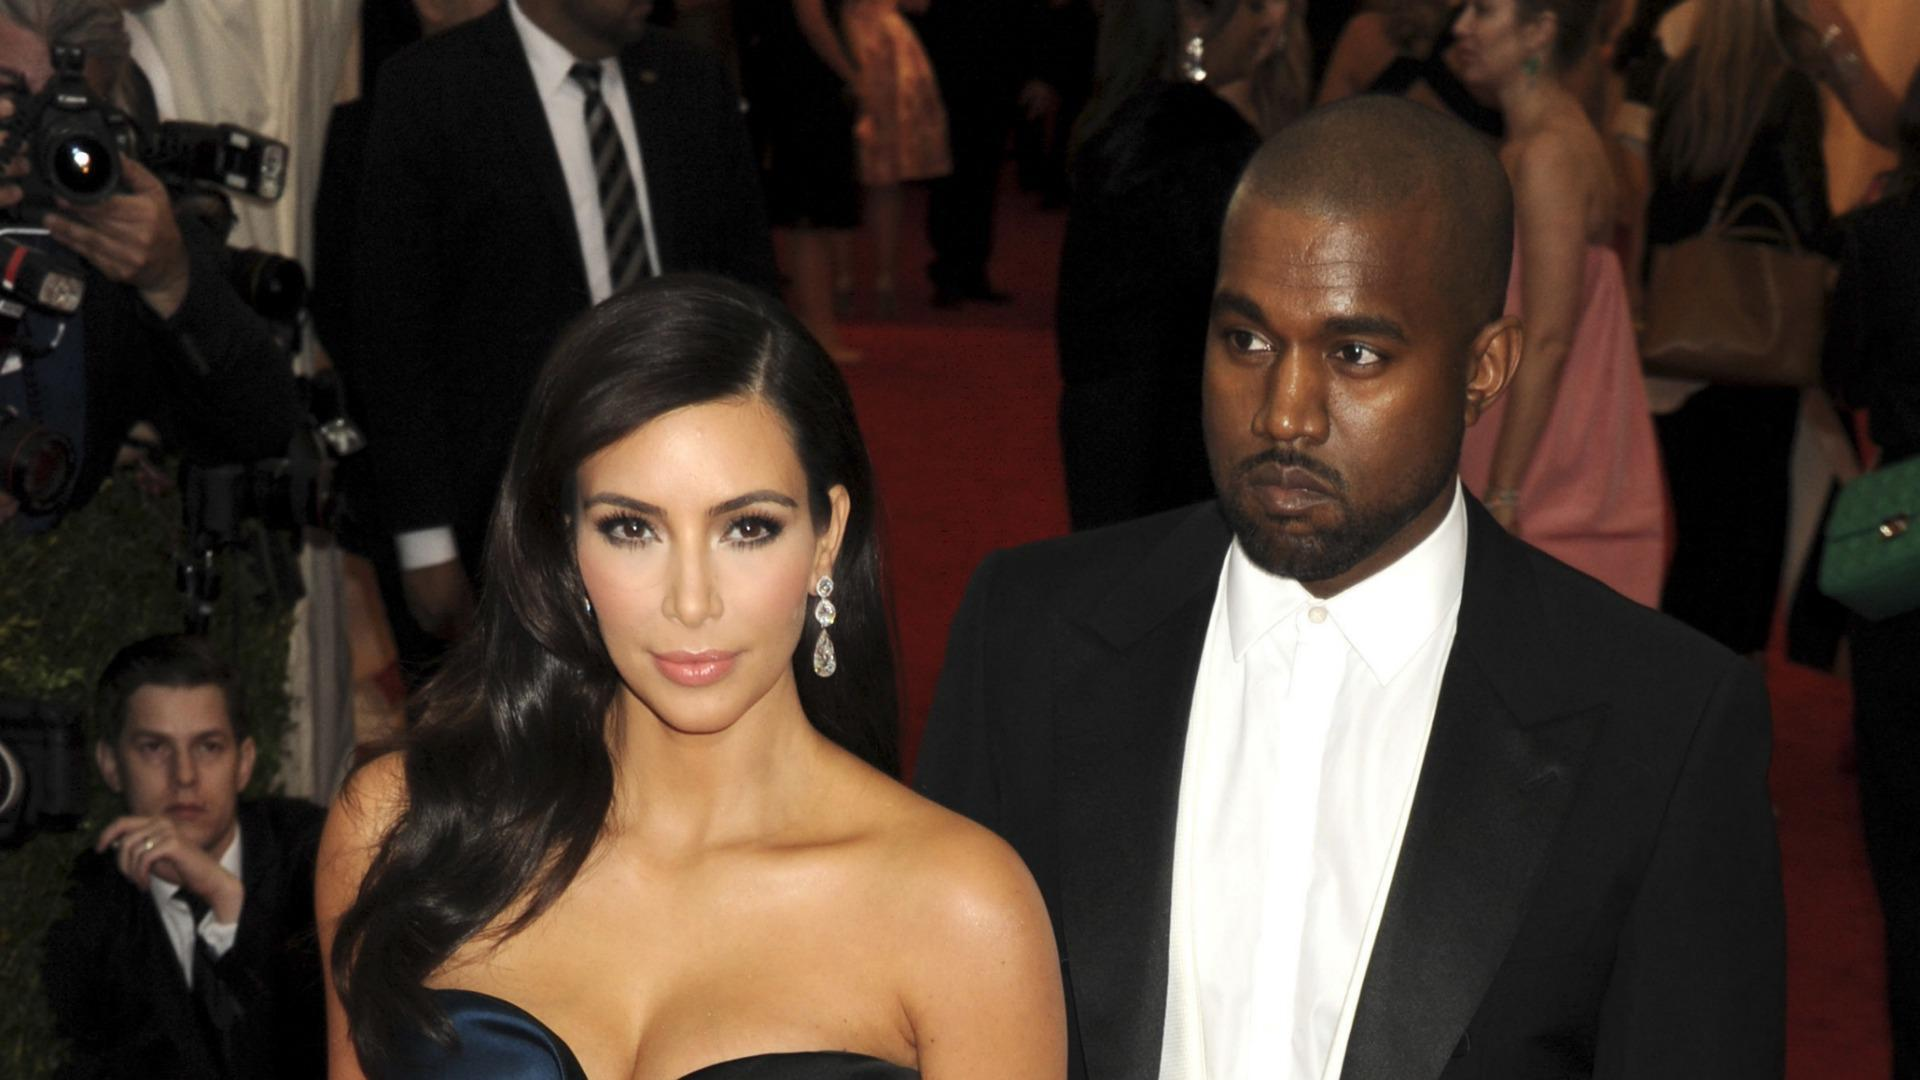 KUWTK: Kim Kardashian Files For Divorce From Kanye West While Already Living Separate Lives – Details!